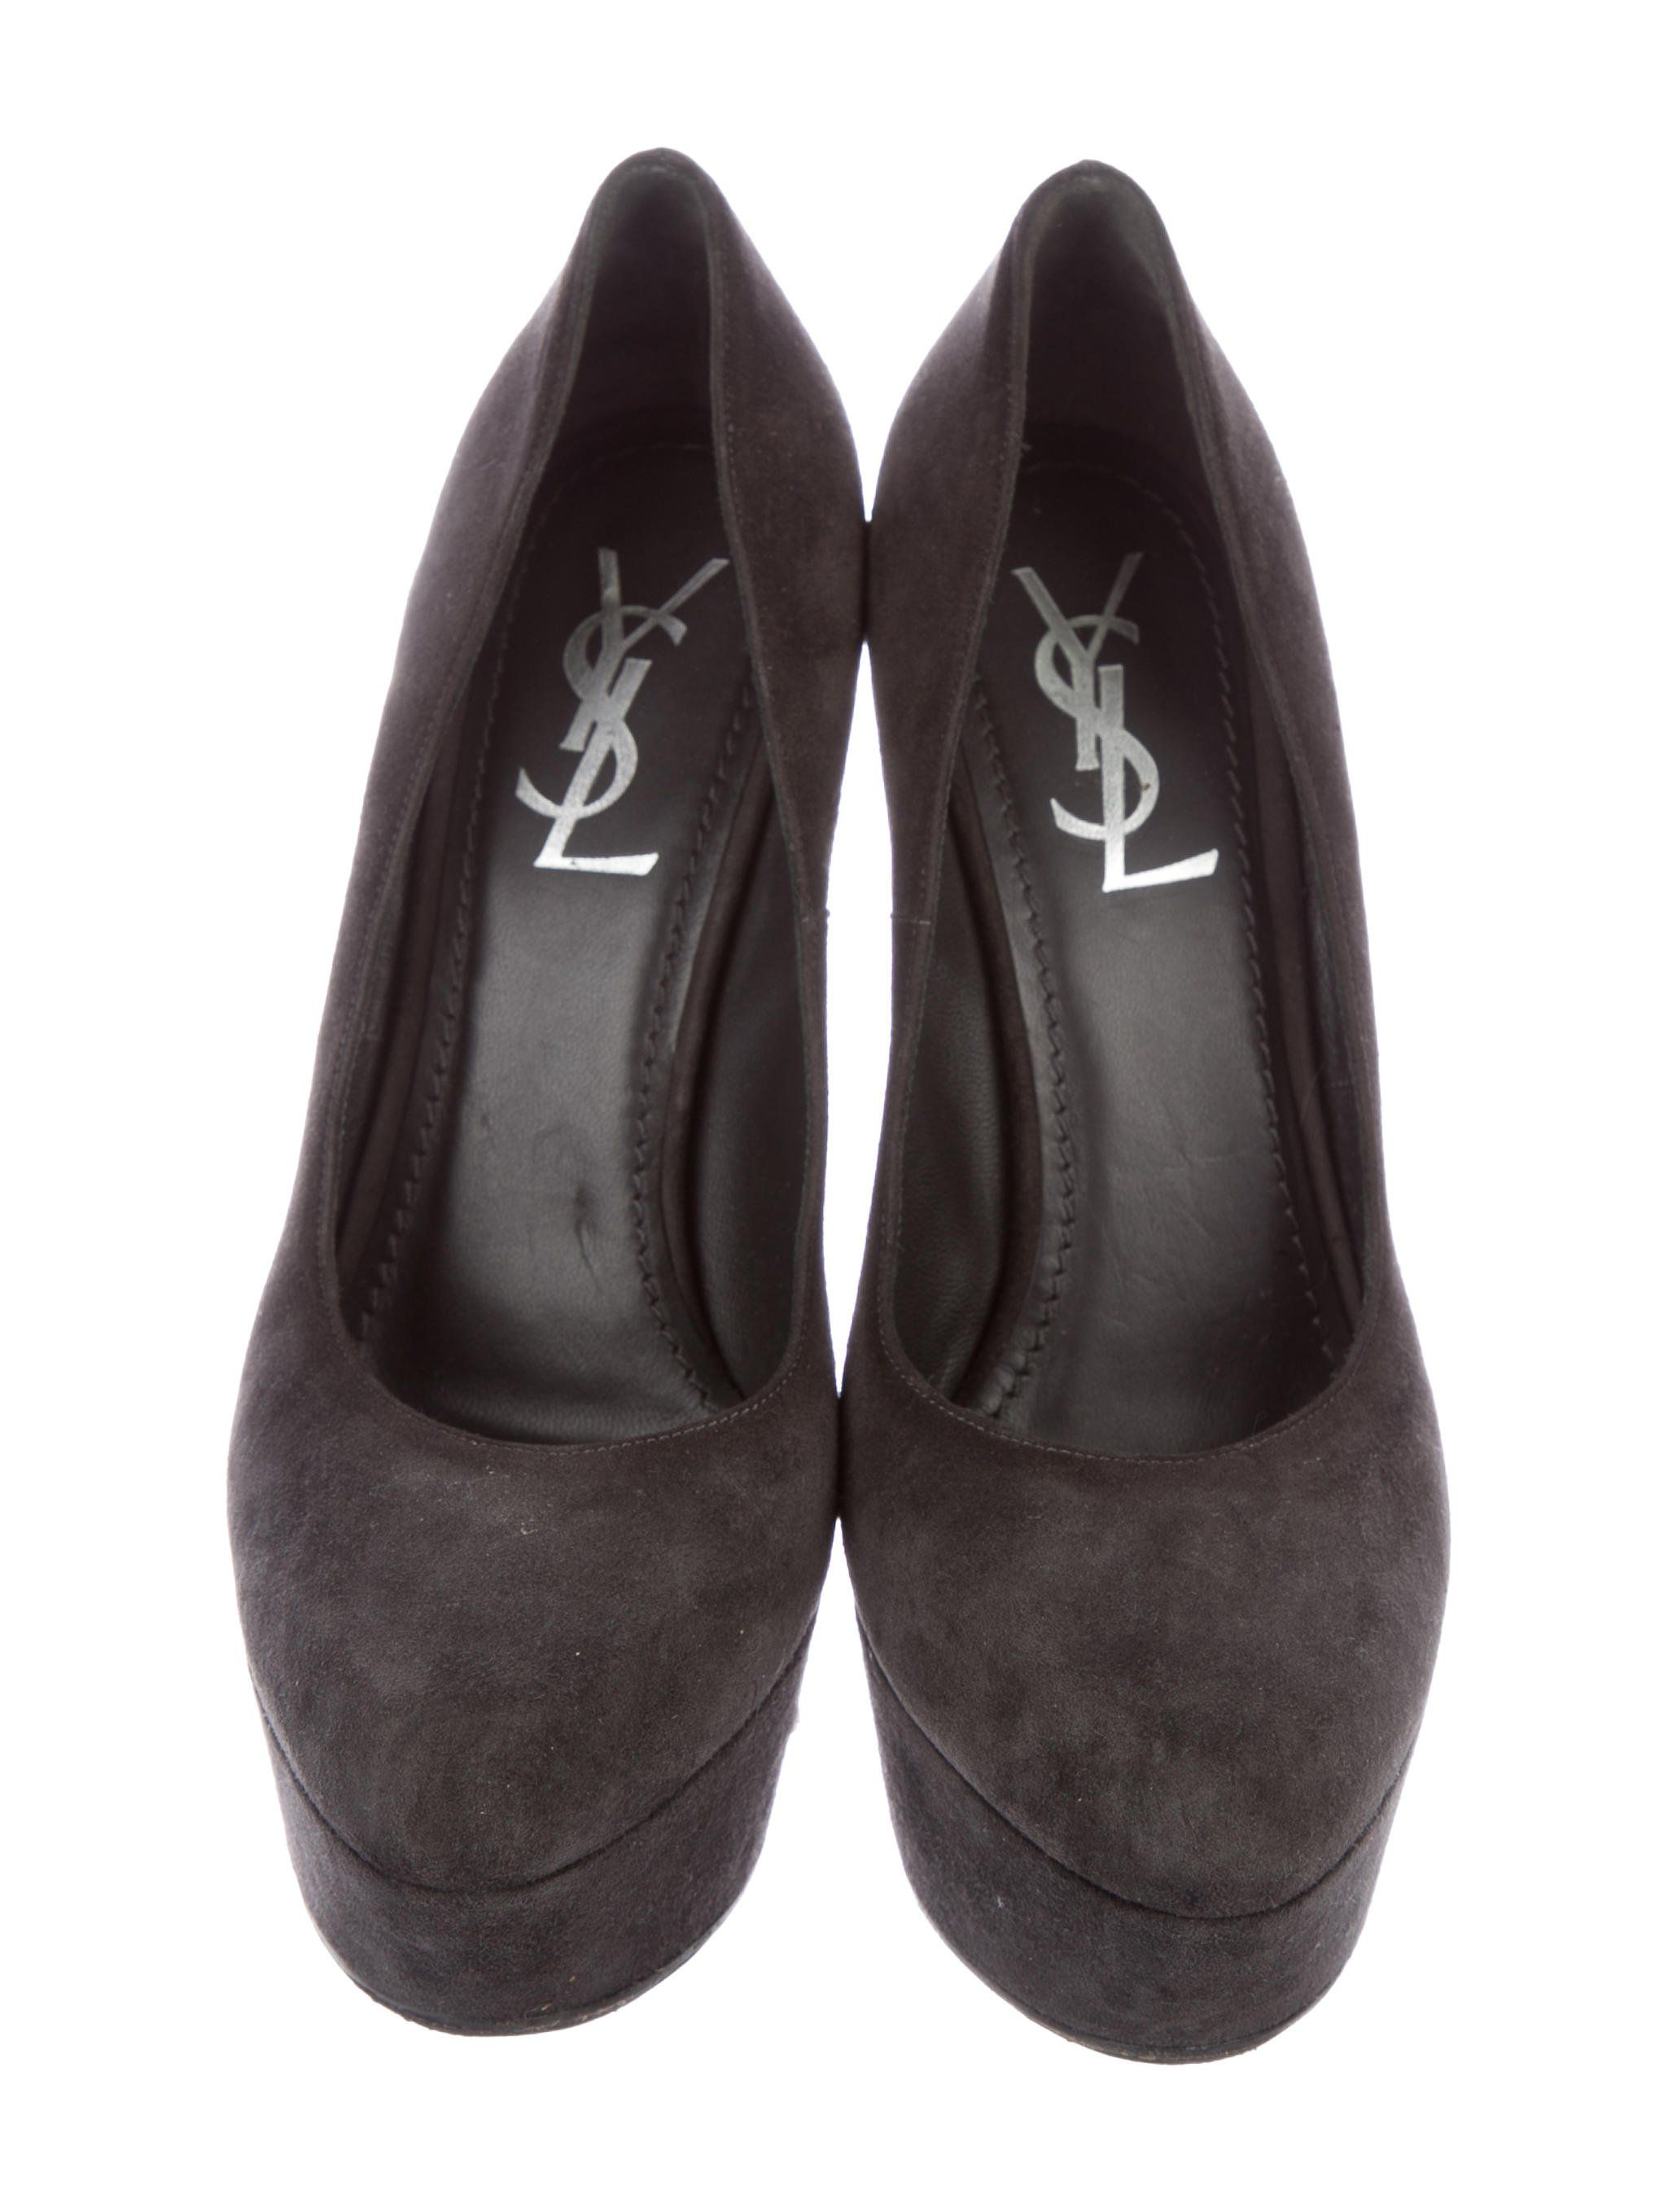 80c3a6710b4 Grey suede Yves Saint Laurent platform pumps with tonal stitching and  covered heels. Suede Platform